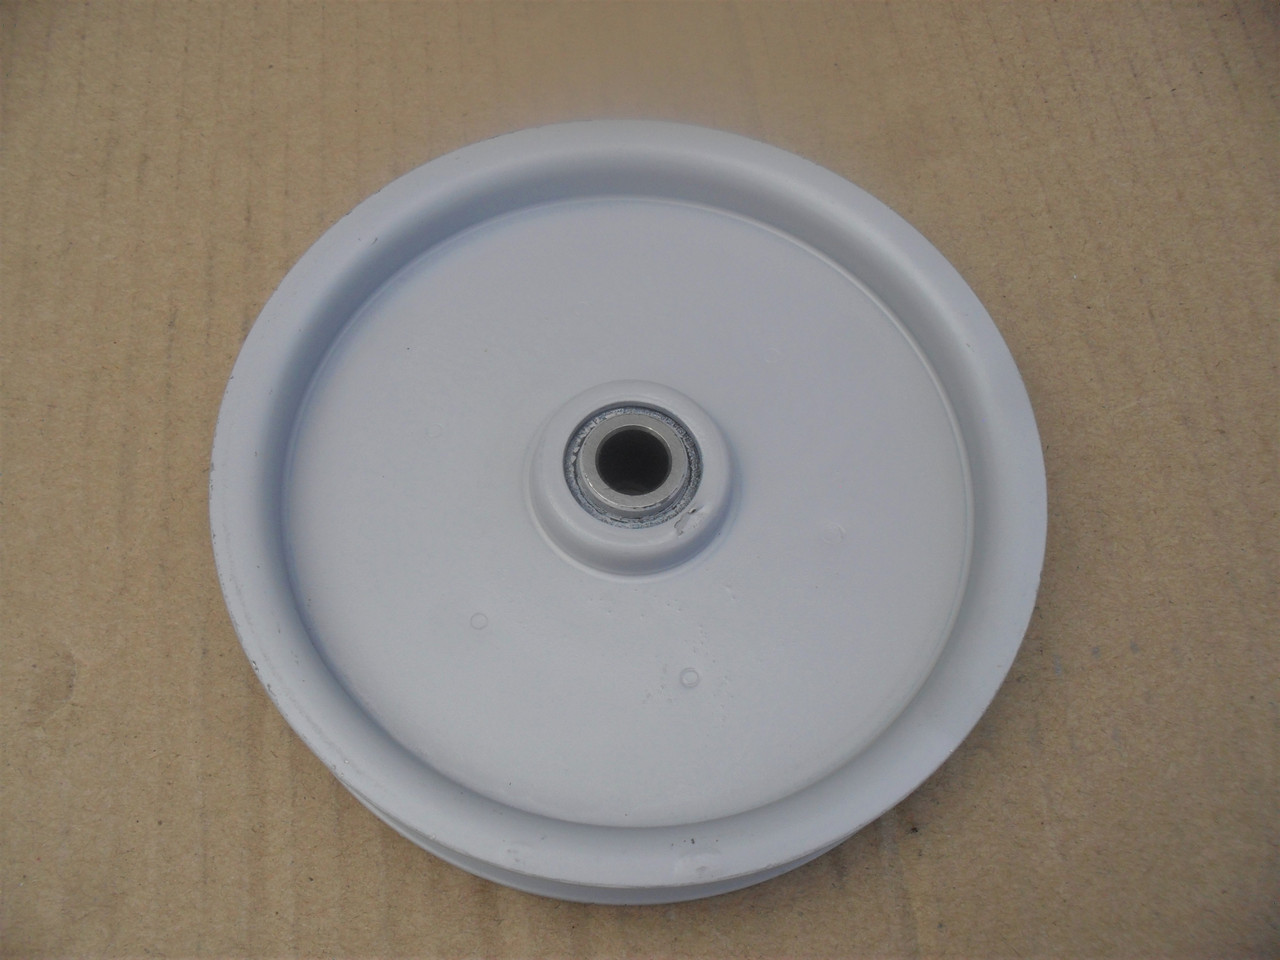 "Idler Pulley for Noma 33182, 44257, 51134, 57736, 57736MA, 8100, ID: 3/8"" OD: 4-1/2"" Made In USA"